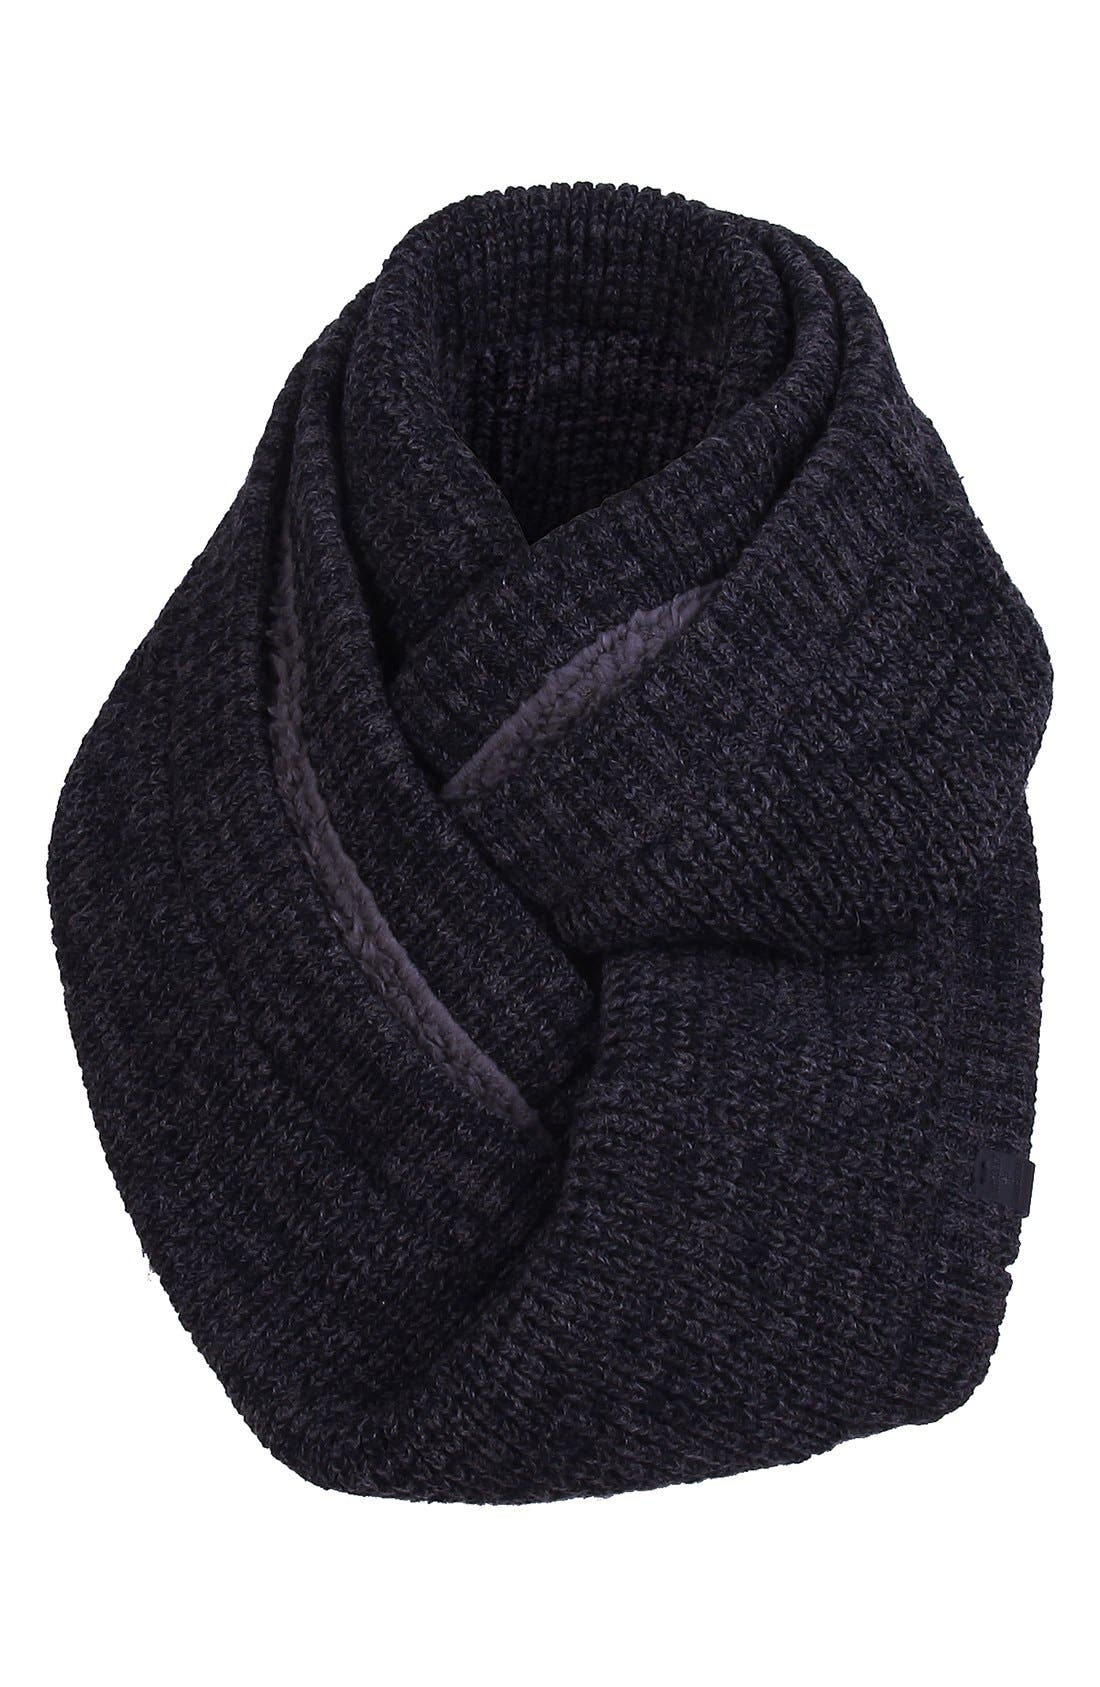 Alternate Image 1 Selected - Bickley + Mitchell Infinity Scarf